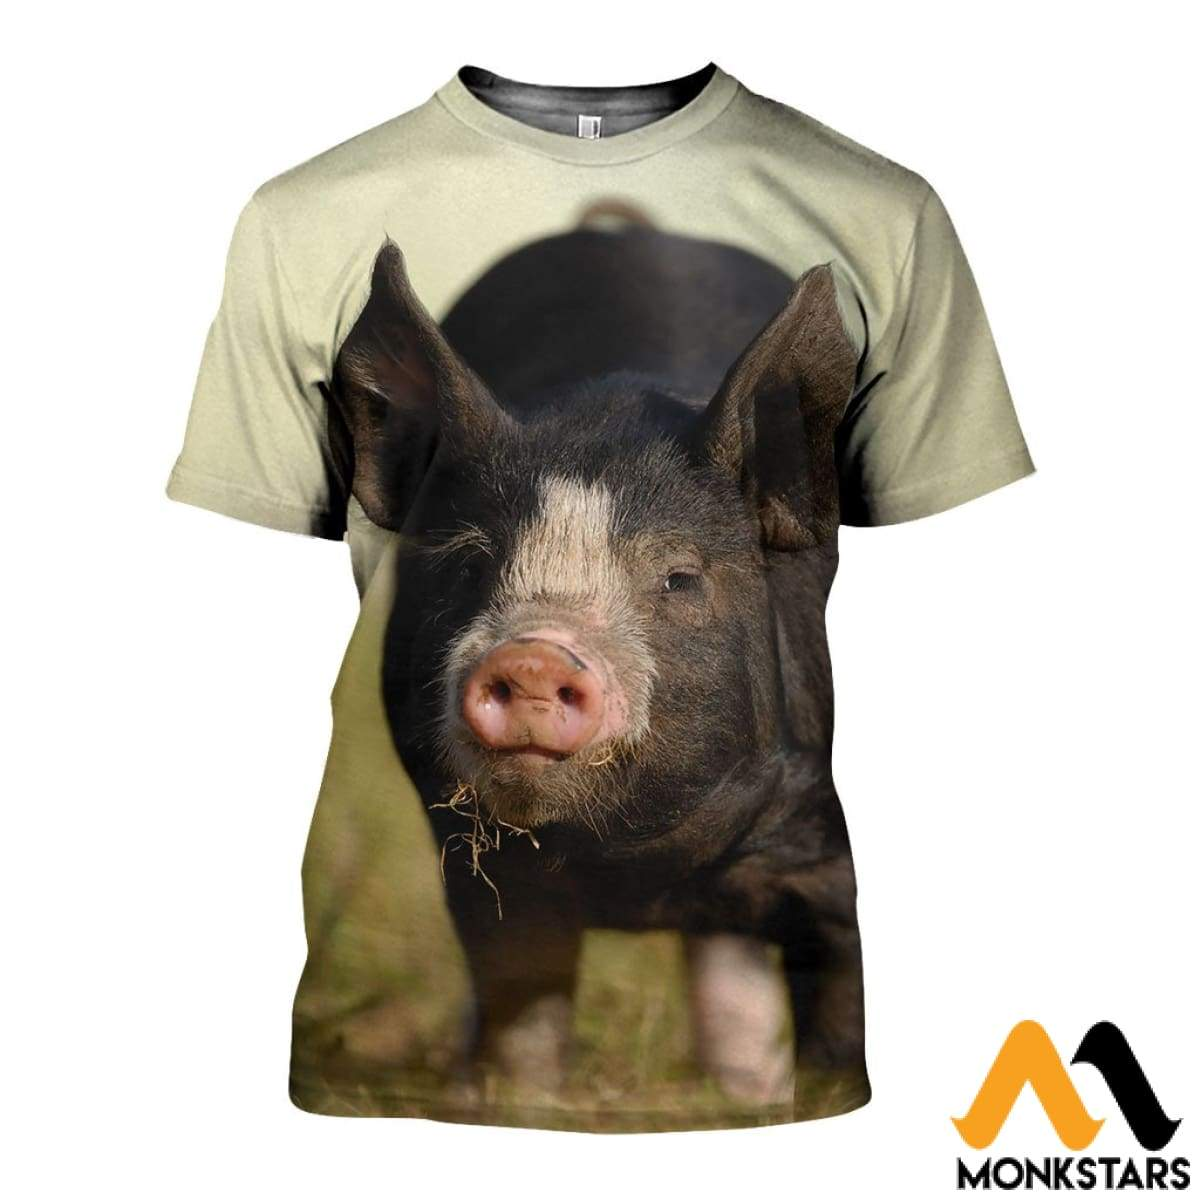 f42df70b1d57 3D All Over Printed Berkshire Pig Shirts and Shorts - Monkstars Inc.